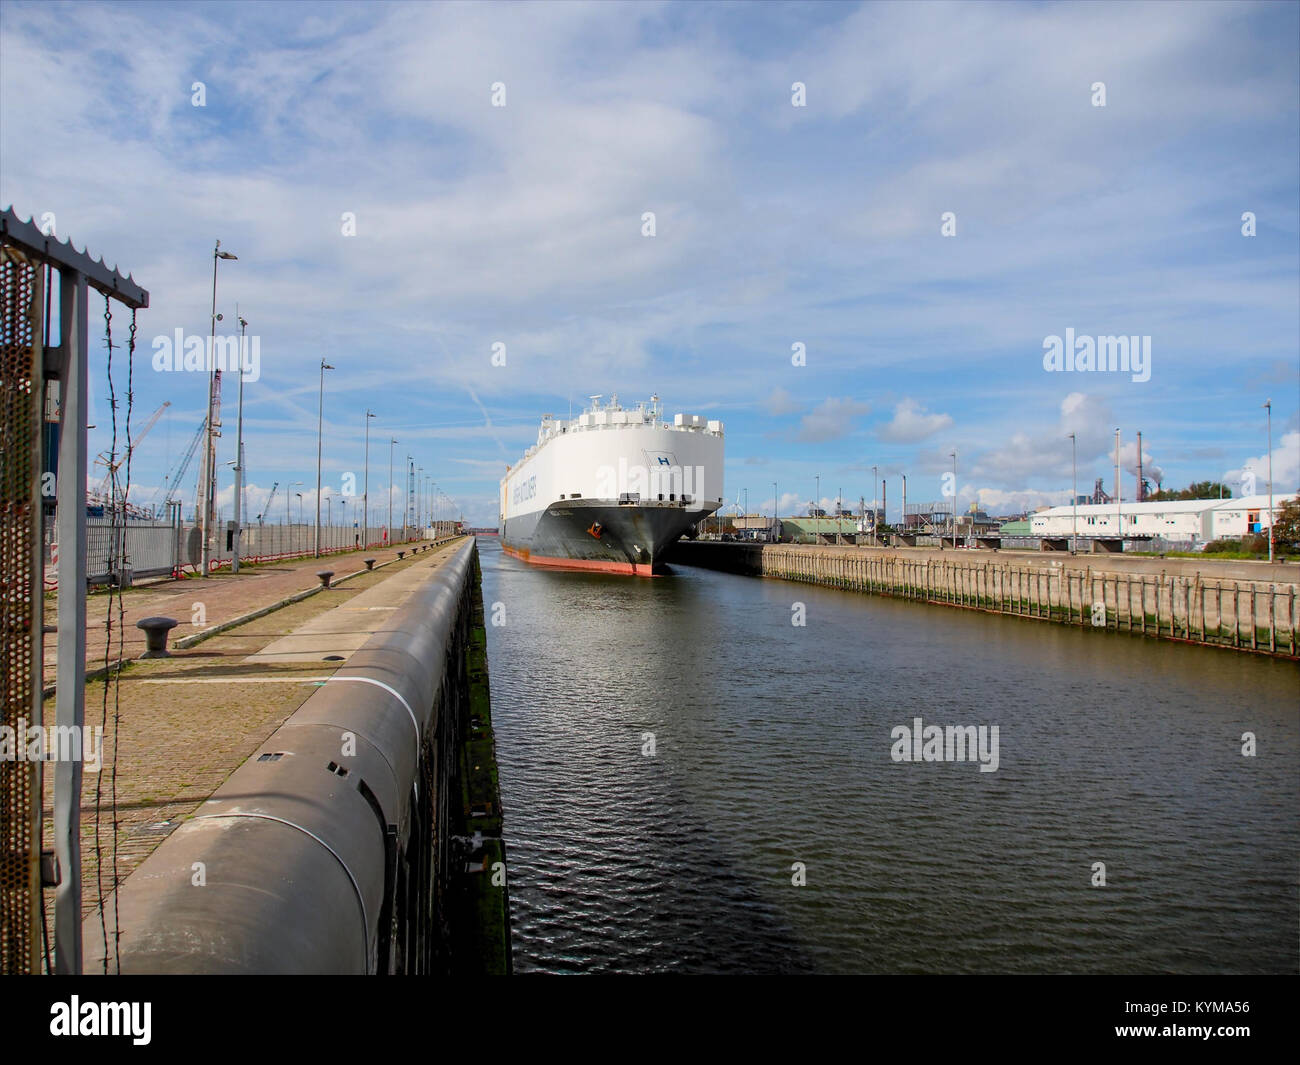 Hoegh Stock Photos & Hoegh Stock Images - Page 3 - Alamy